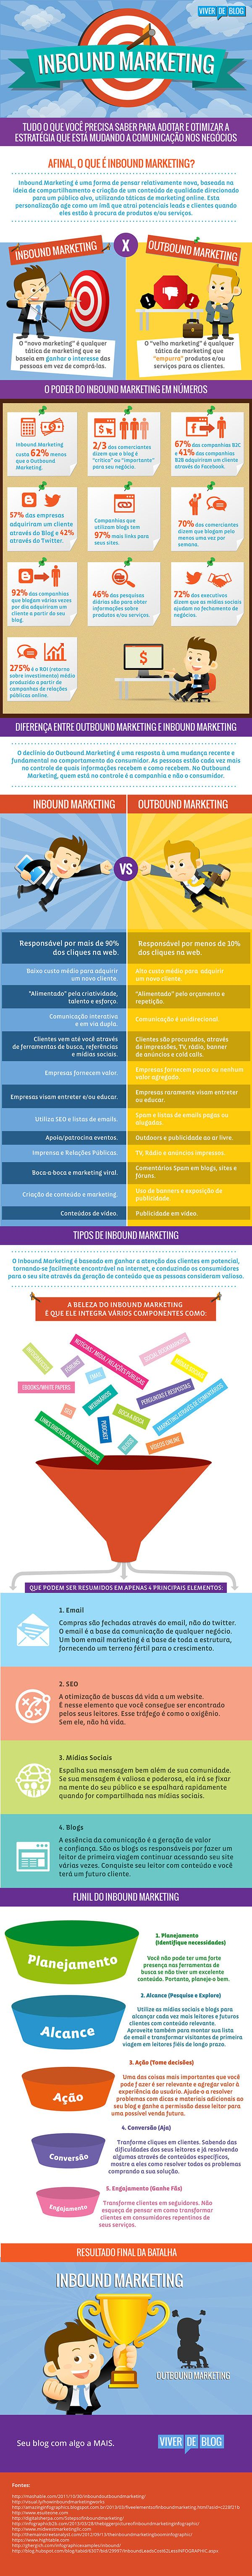 Inbound Marketing: O que é e por que é tão importante?